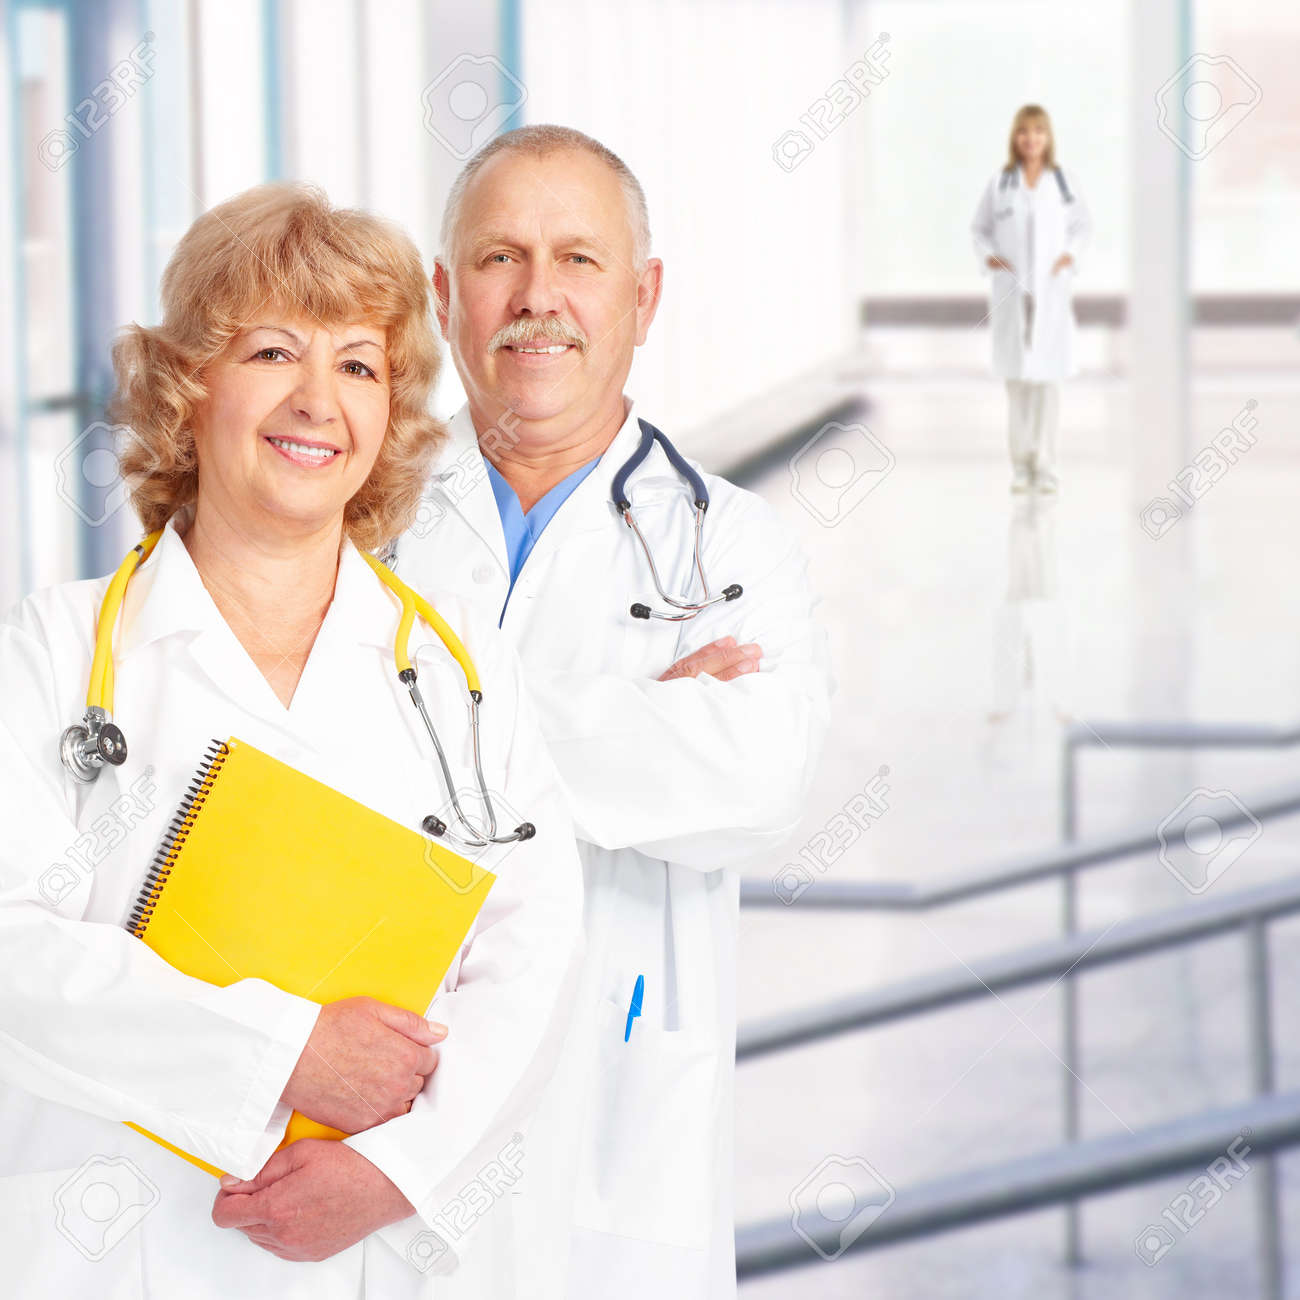 Smiling medical doctors with stethoscopes. Over blue background Stock Photo - 7702630